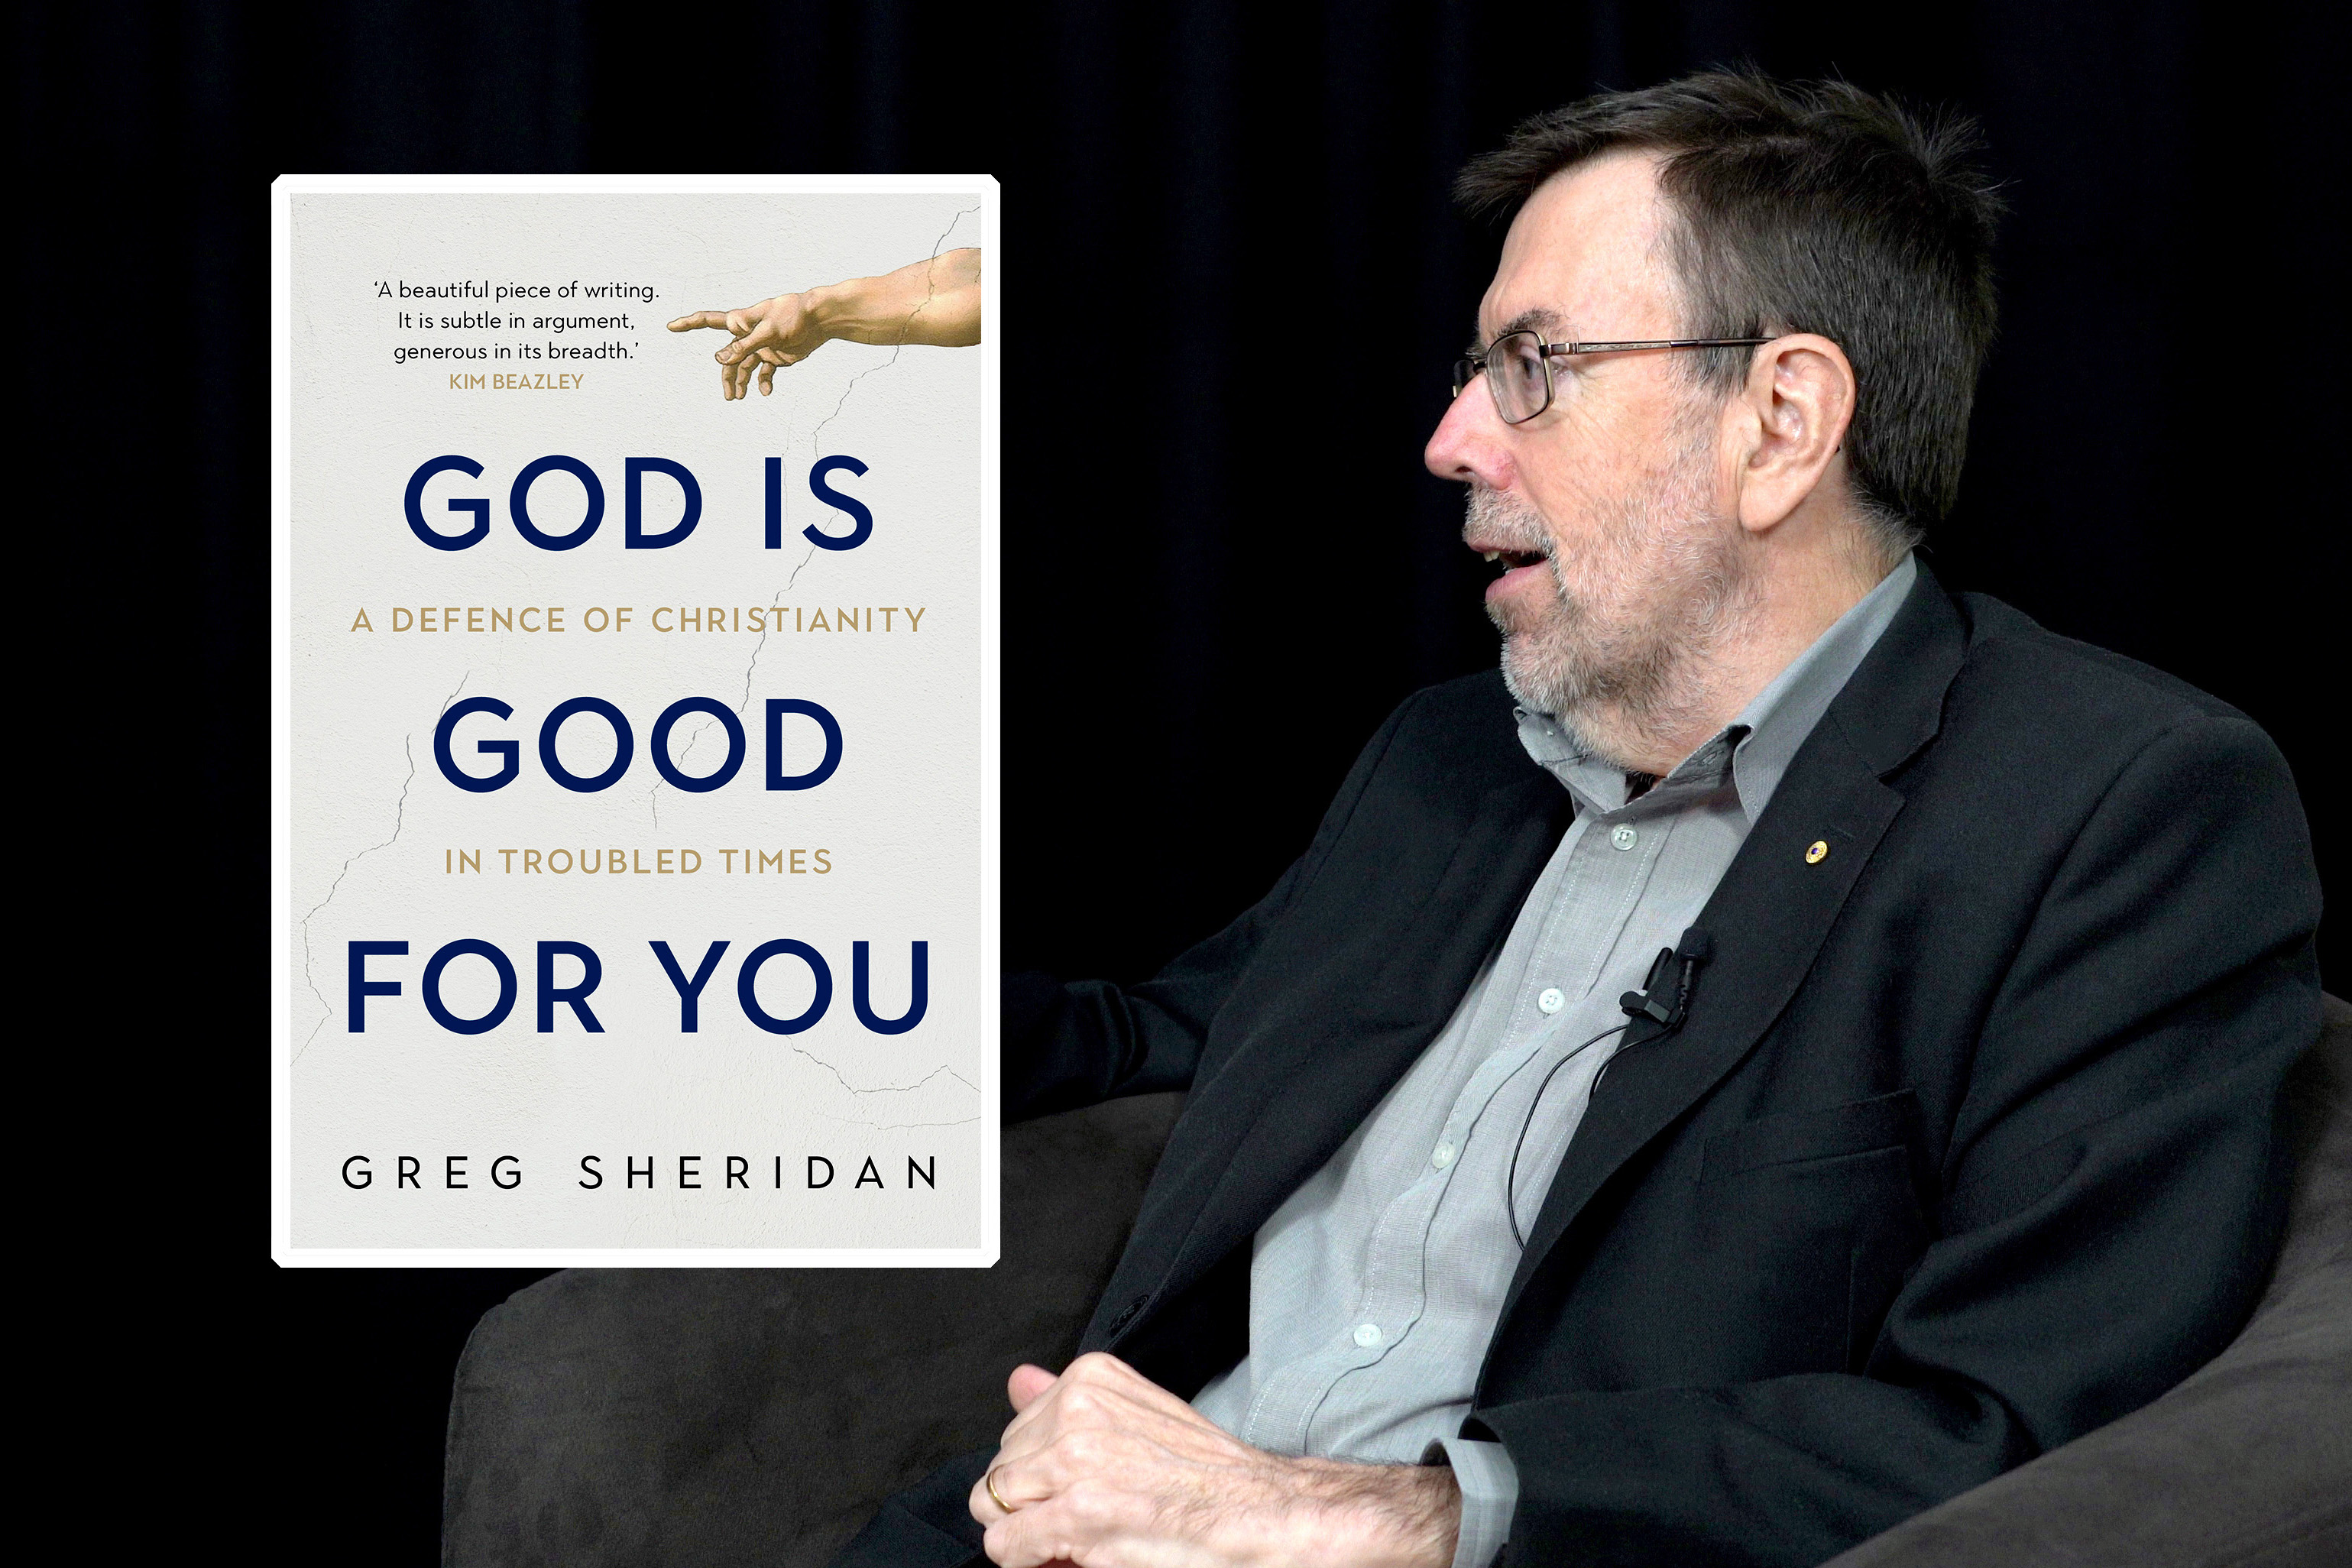 Mr Sheridan said he hoped that people from all age groups, religious backgrounds and beliefs (even atheists) would read and benefit from his book. Photo: Josh Low.